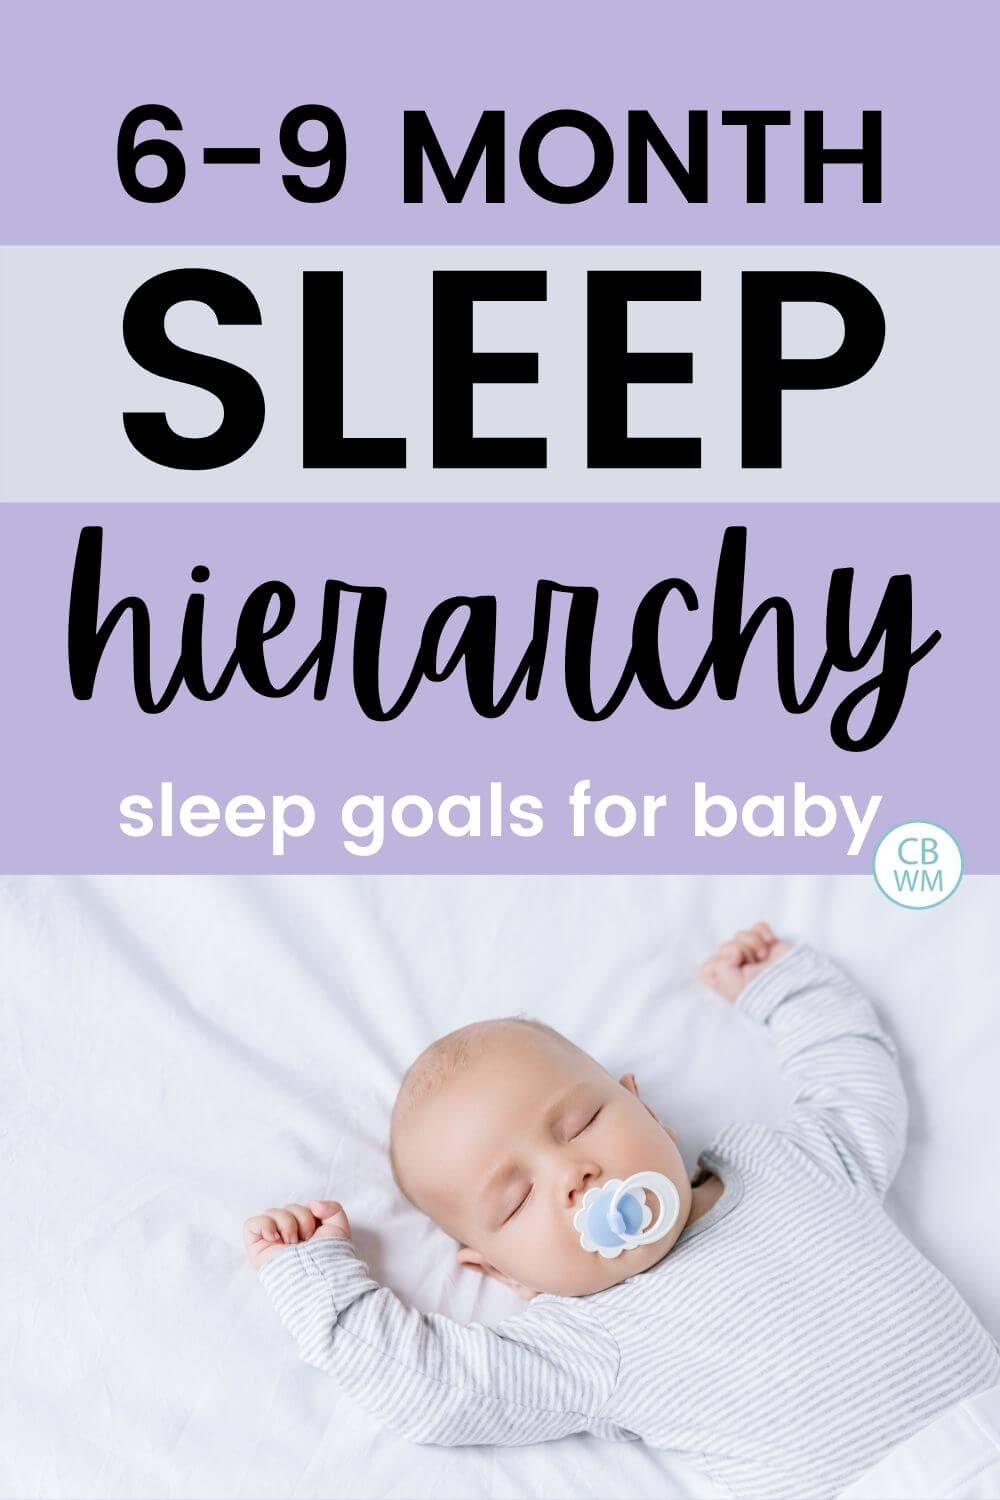 6-9 month sleep hierarchy for baby